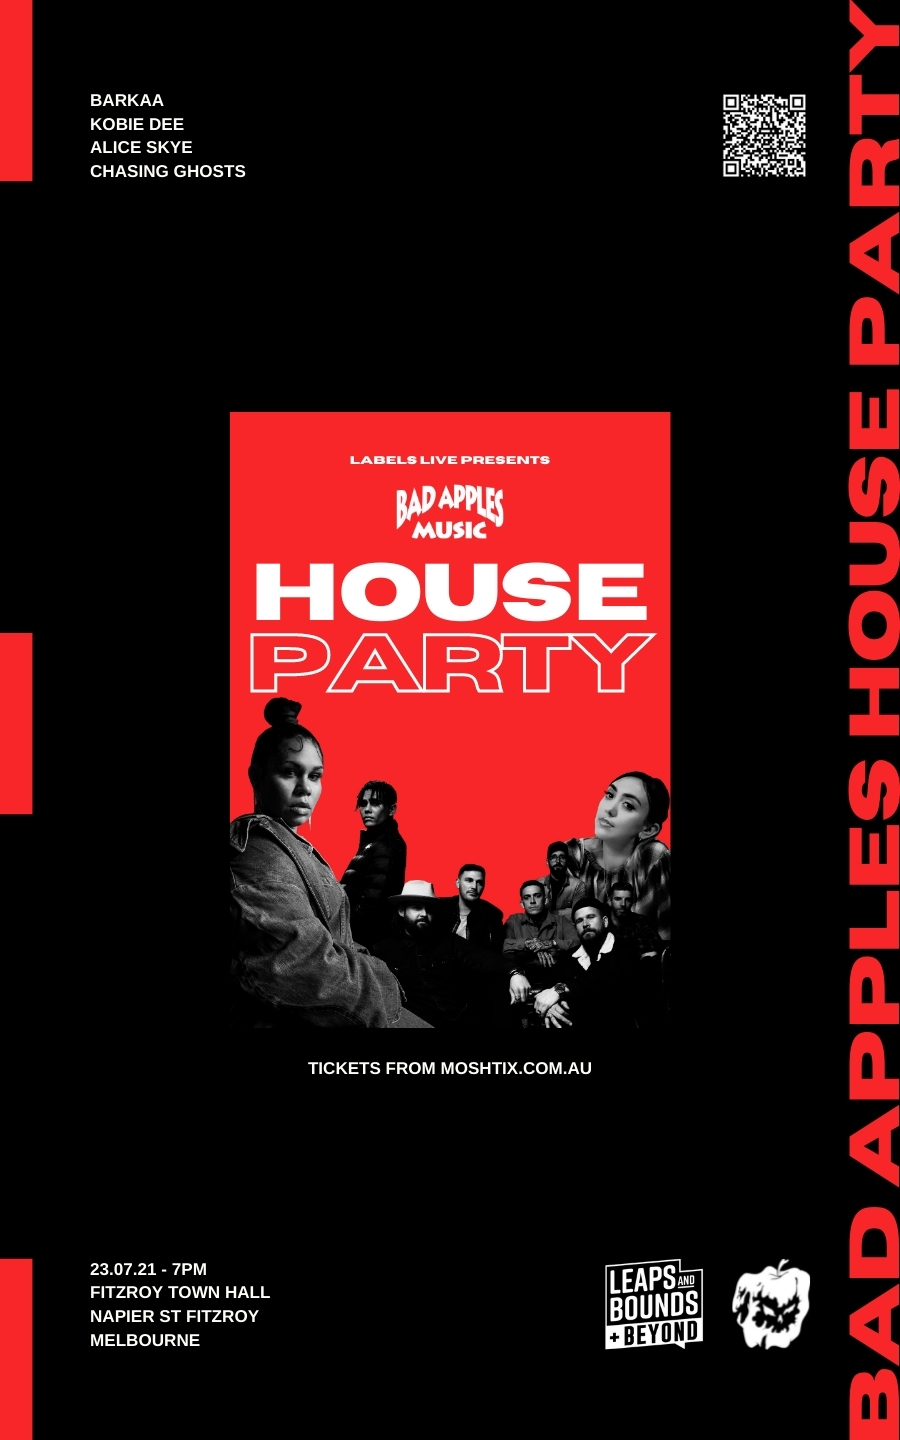 BAD APPLES HOUSE PARTY @ FITZROY TOWN HALL